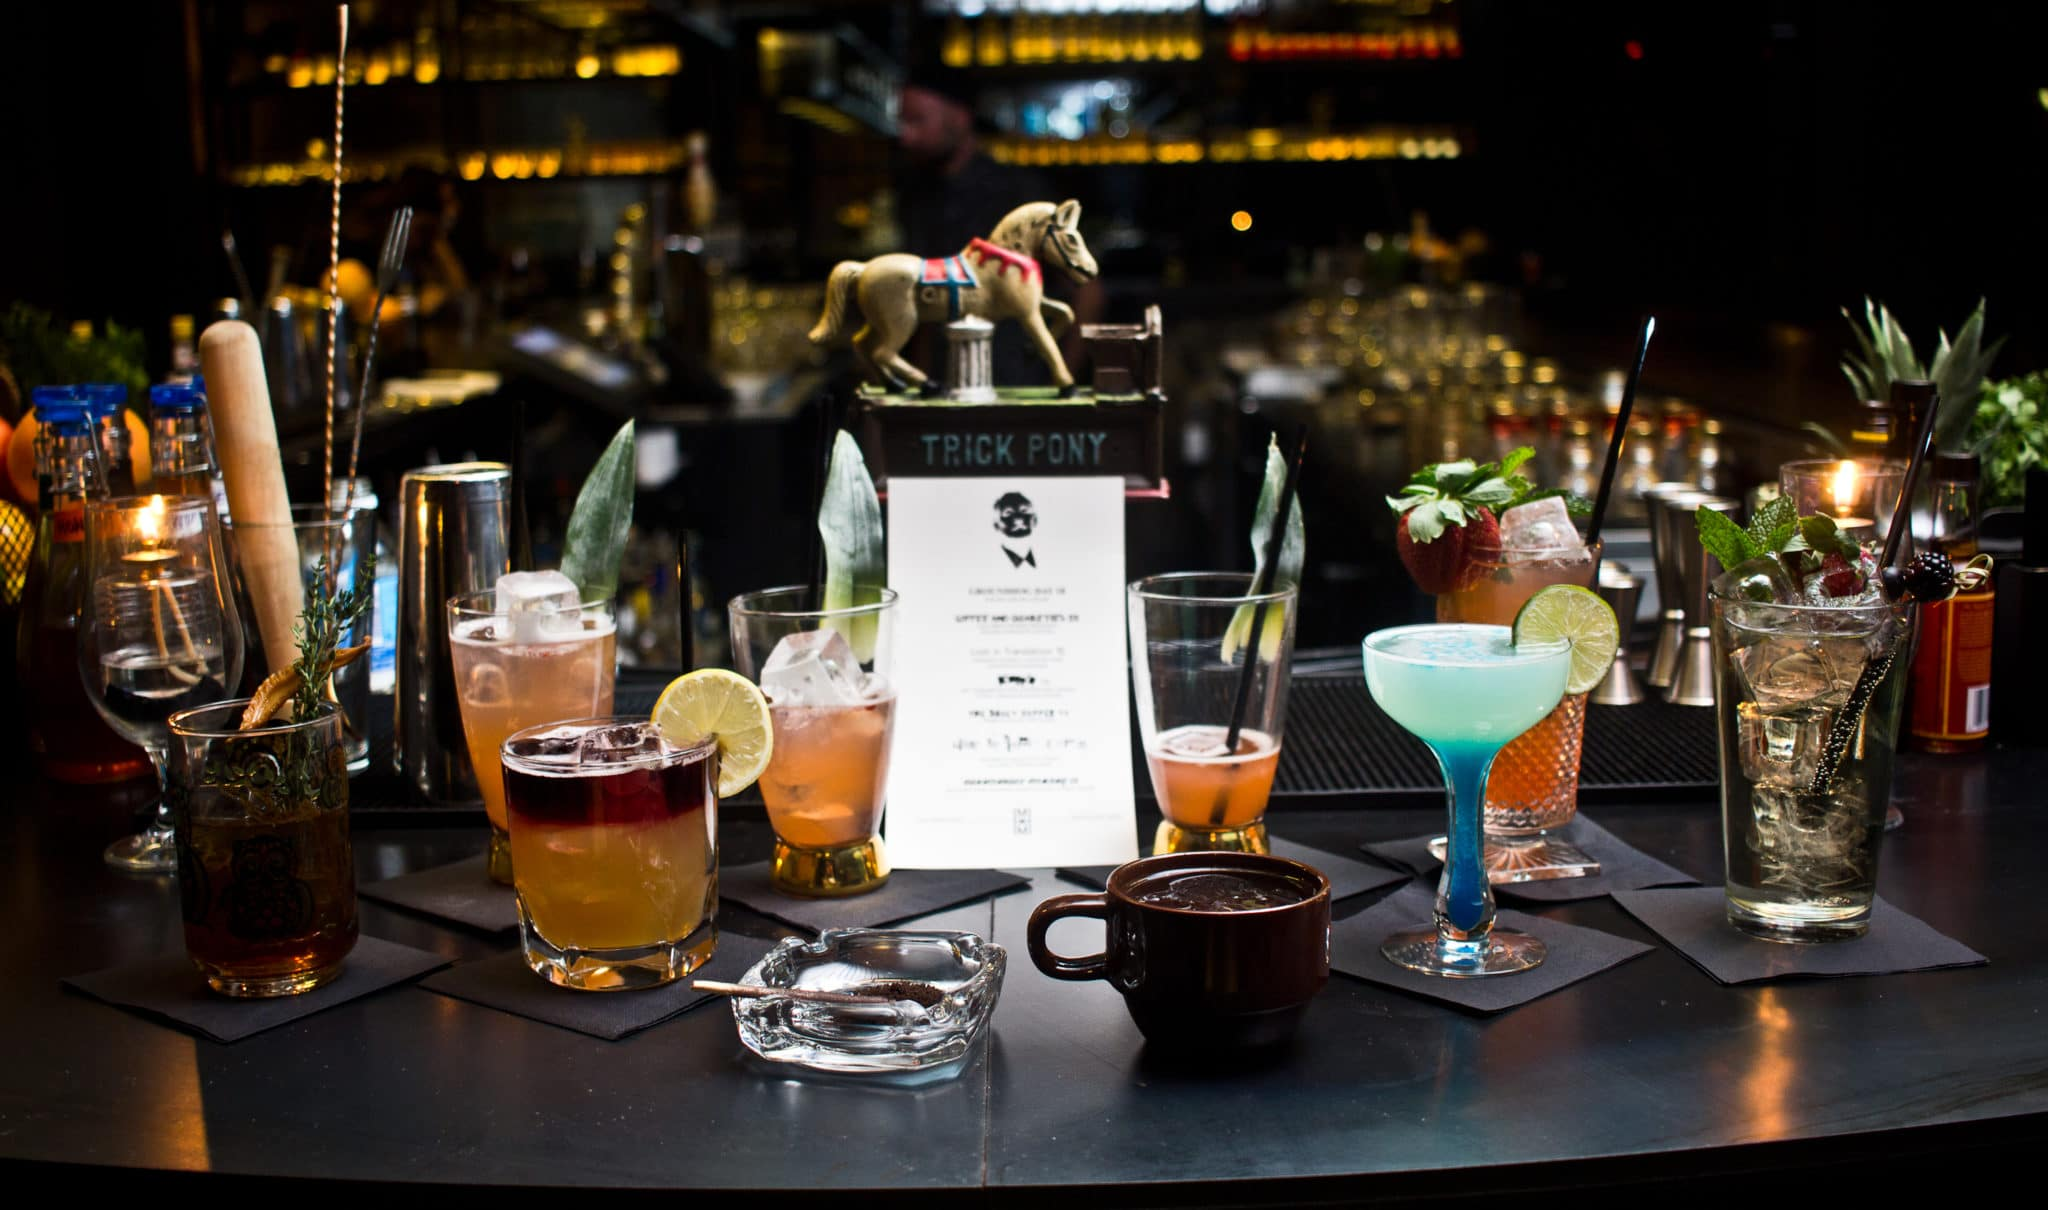 Trick Pony's Bill Murray-themed cocktails